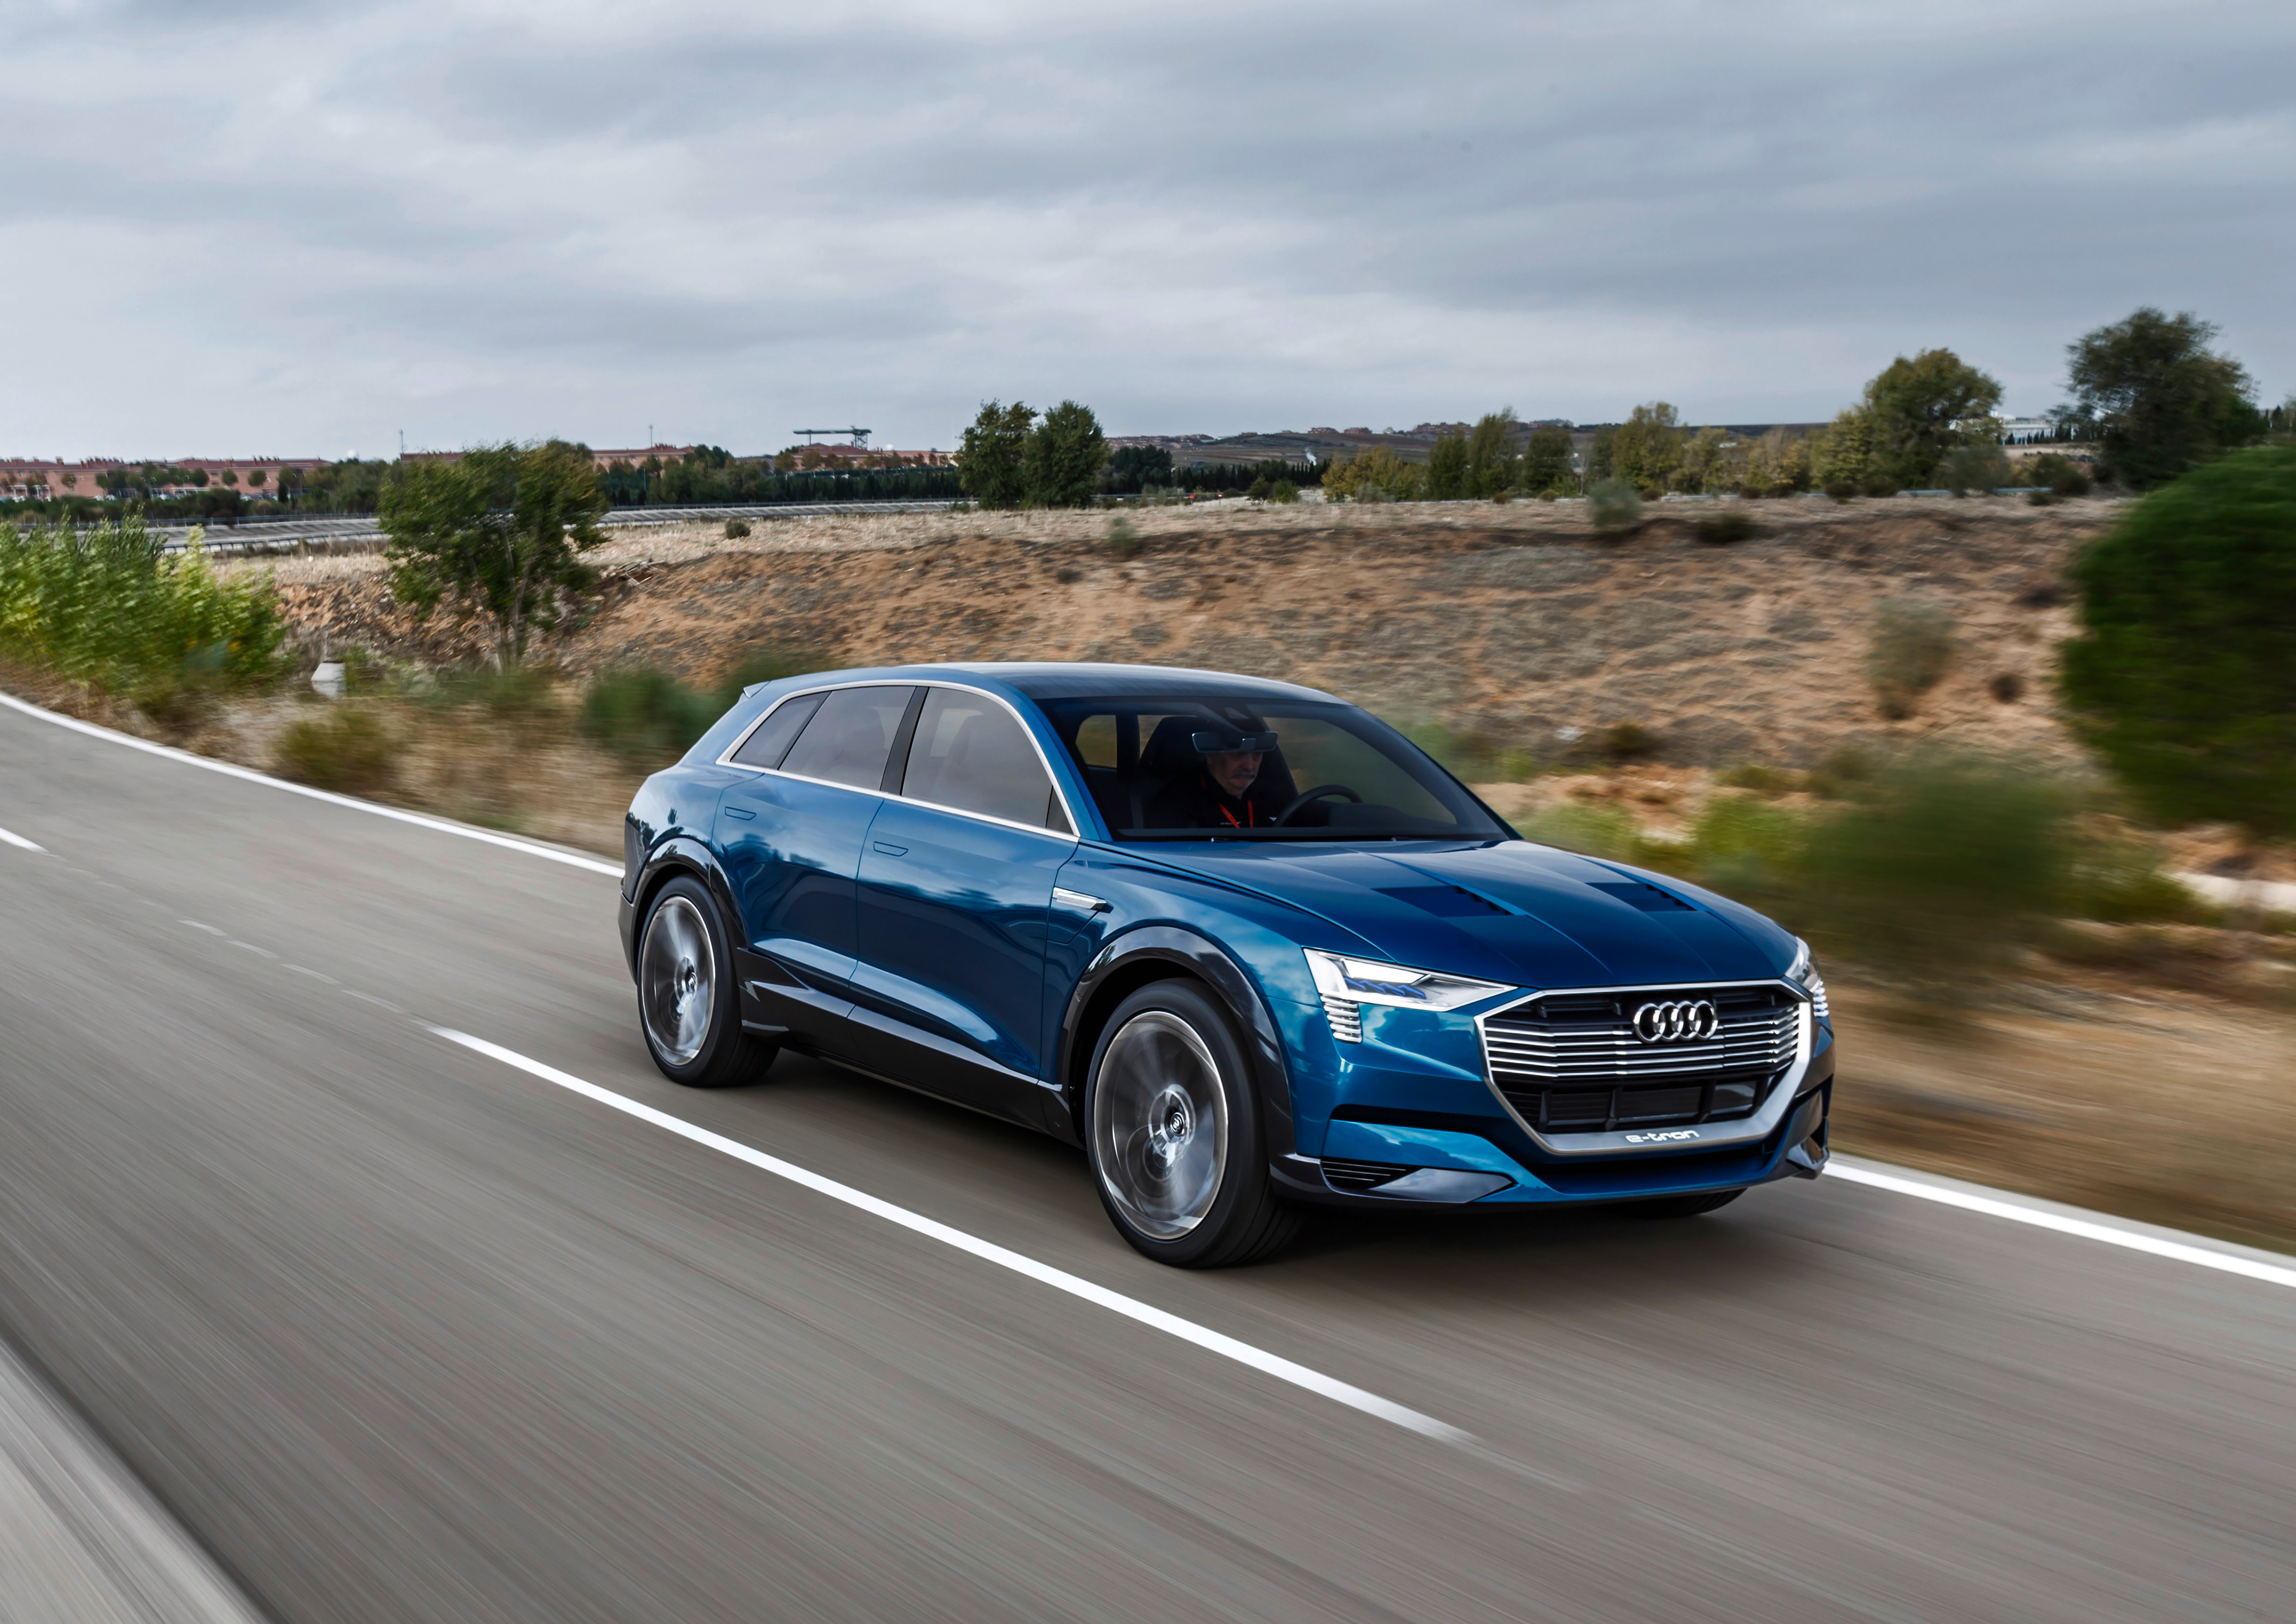 The Audi e-tron Quattro concept car